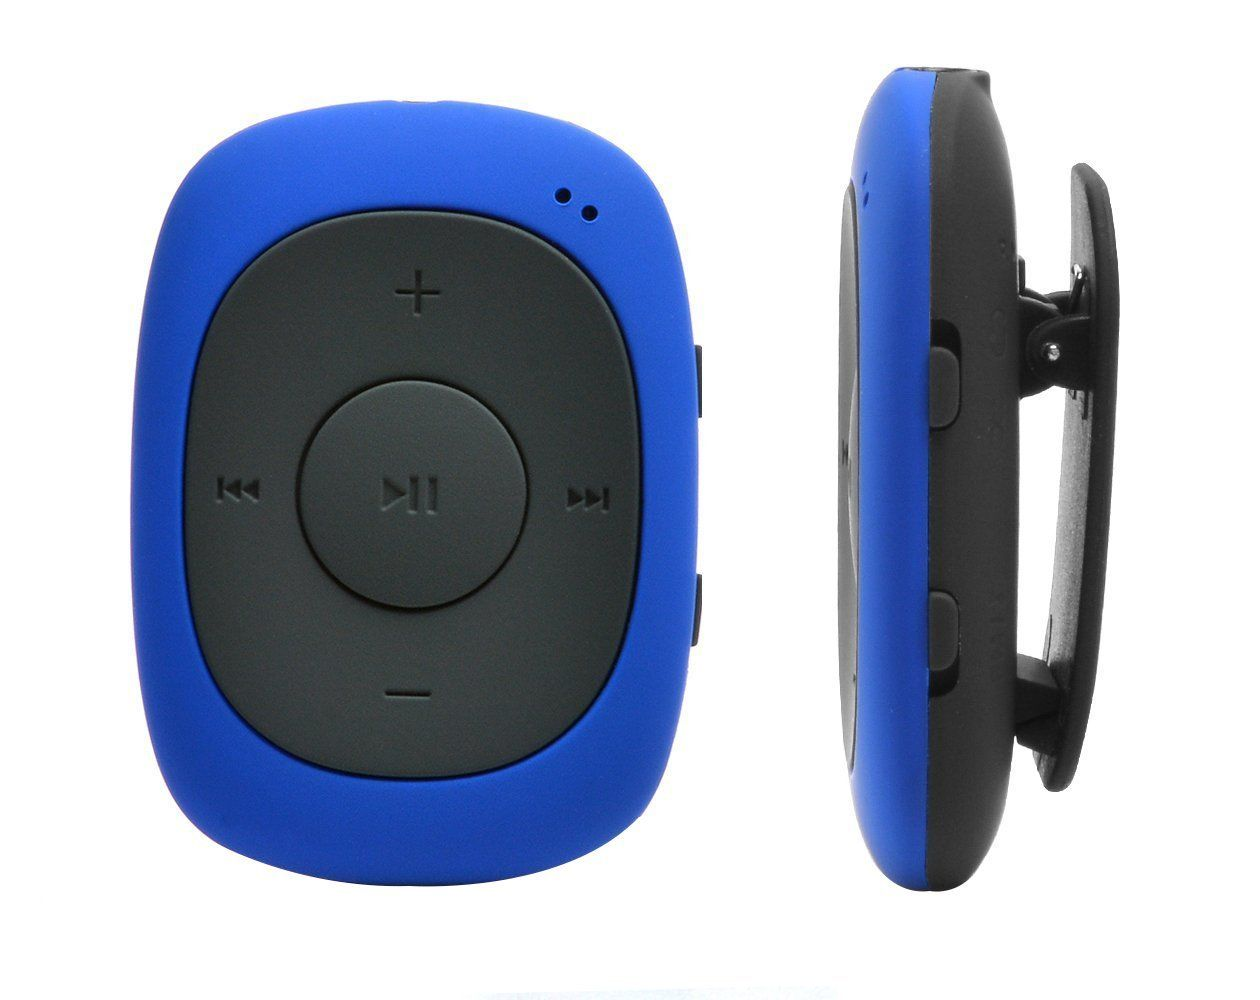 Agptek G02 Mp3 Player 8gb Portable Clip Nbsp Player Music With Fm Radio Supporting Mp3 Wma Wav Blue Music Players Radio Mp3